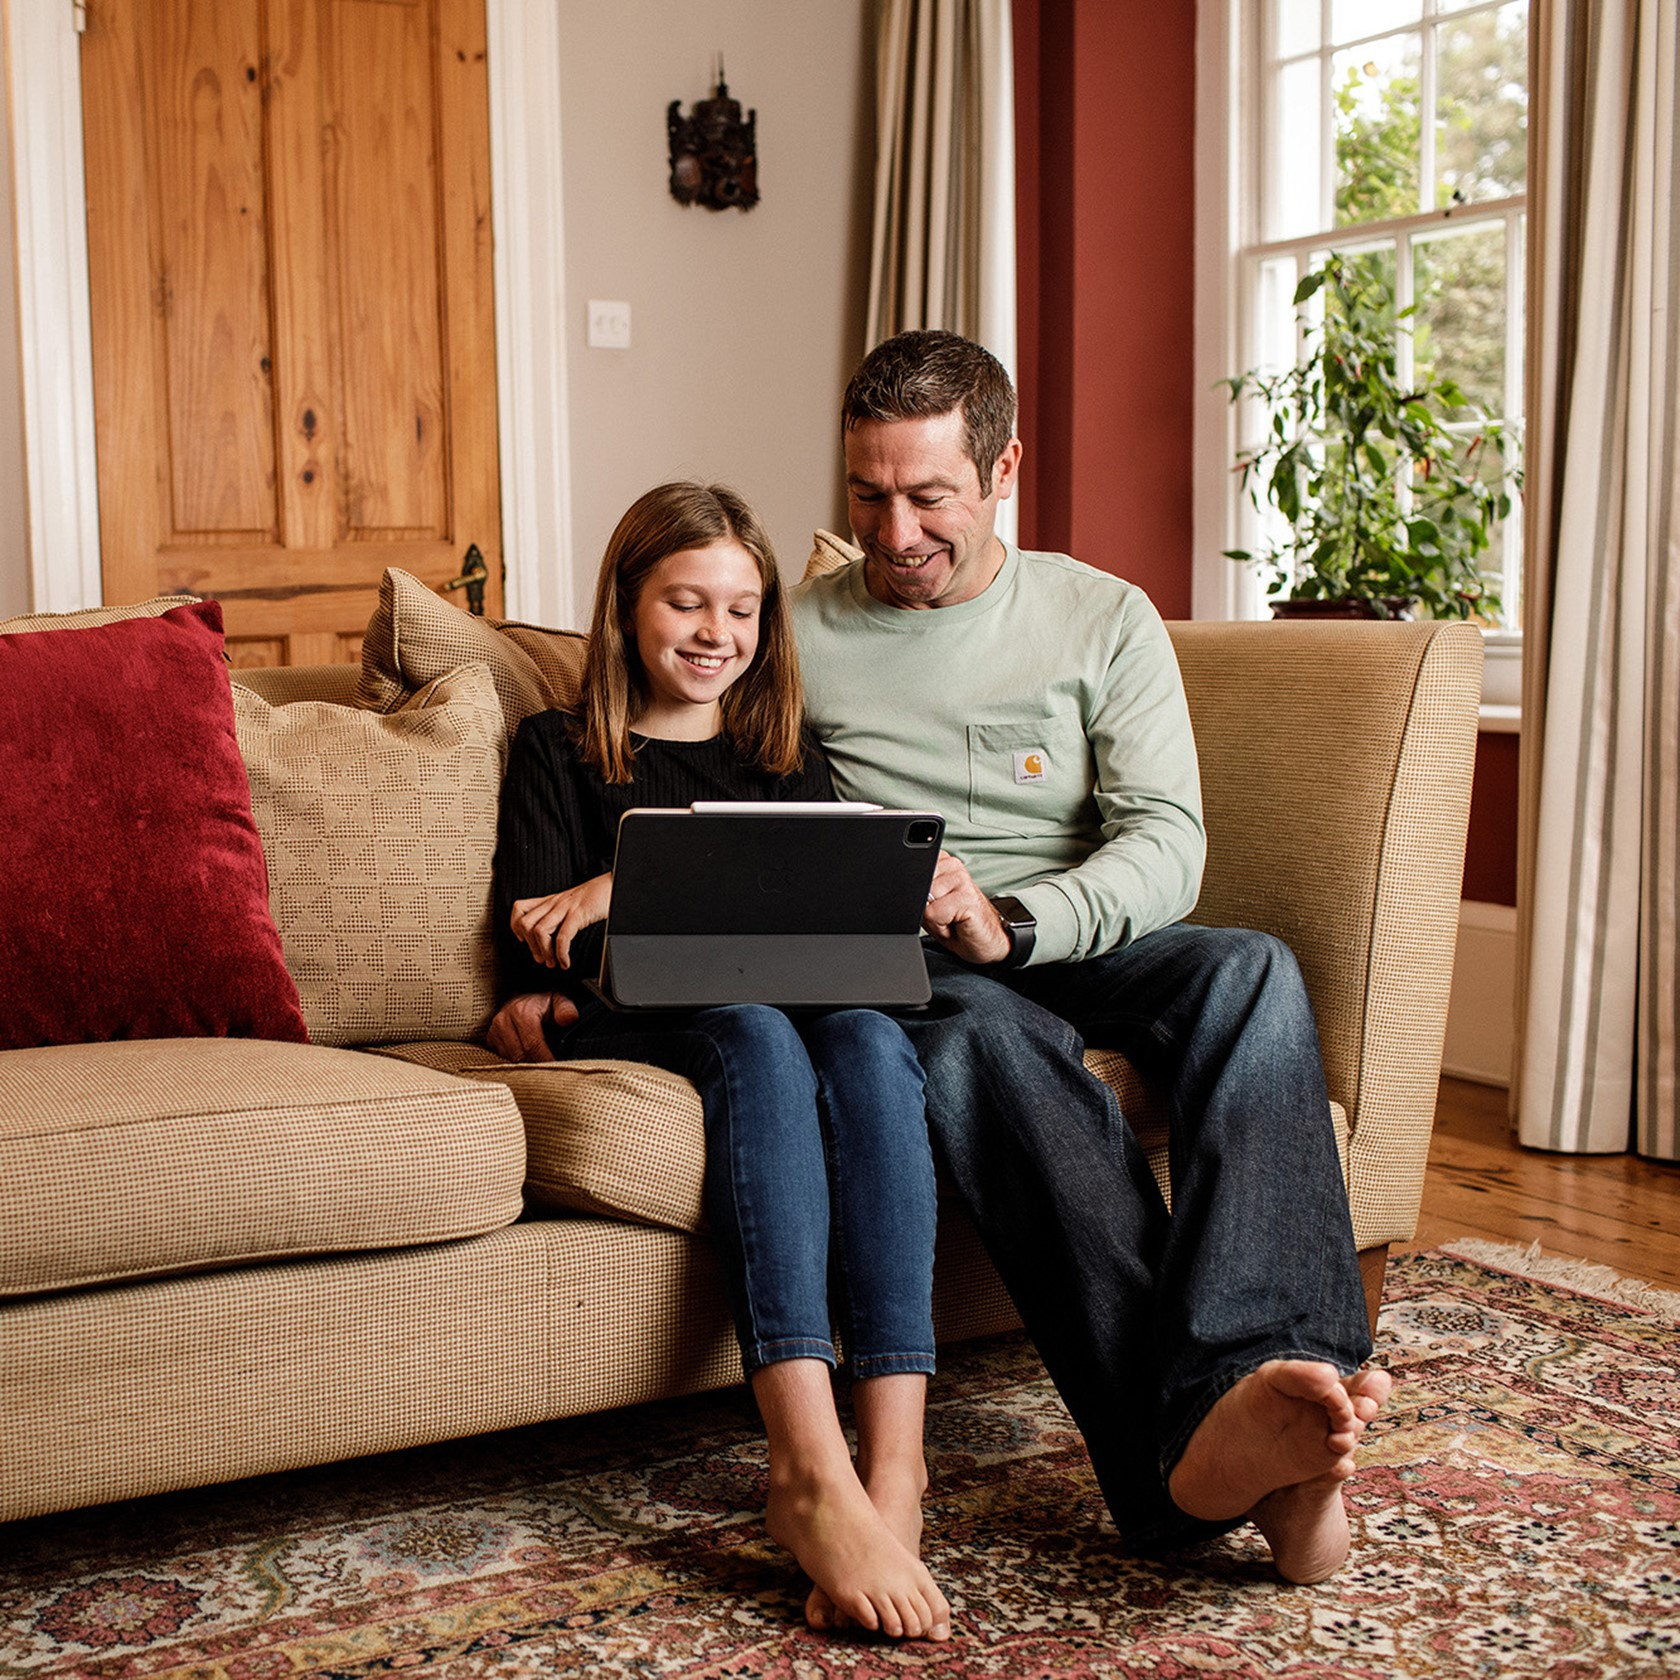 Father and daughter sit on a sofa whilst enjoying using a tablet.